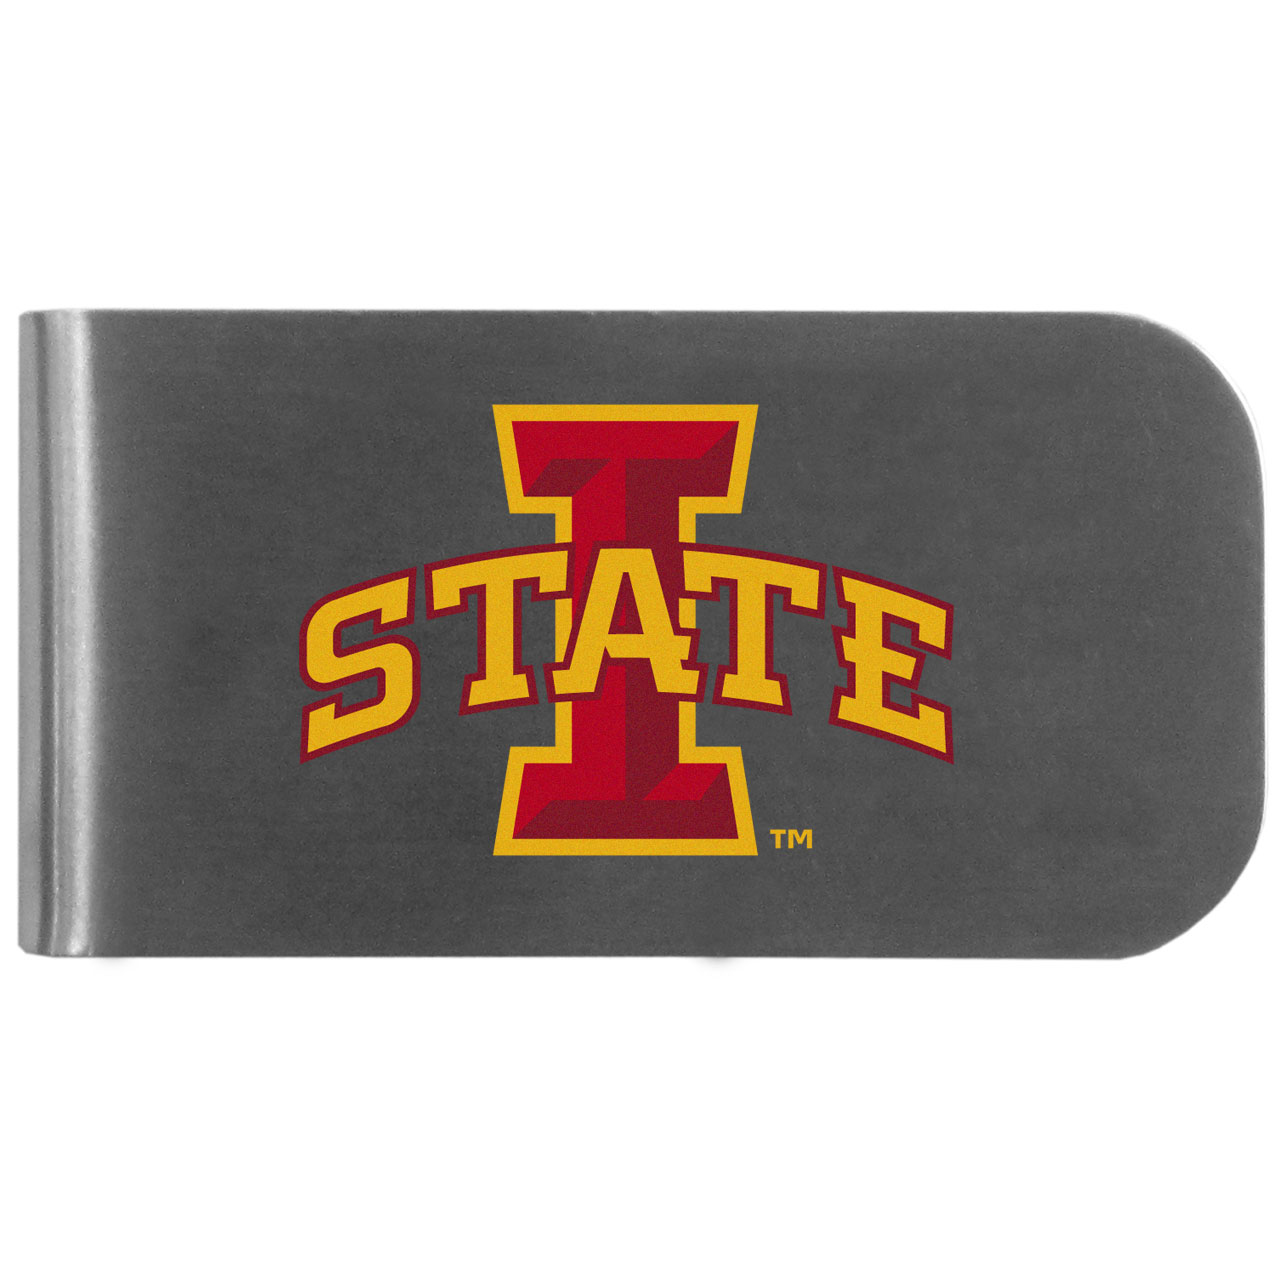 Iowa St. Cyclones Logo Bottle Opener Money Clip - This unique money clip features a classic, brushed-metal finish with a handy bottle opener feature on the back. The clip has the Iowa St. Cyclones logo expertly printed on the front of the clip.